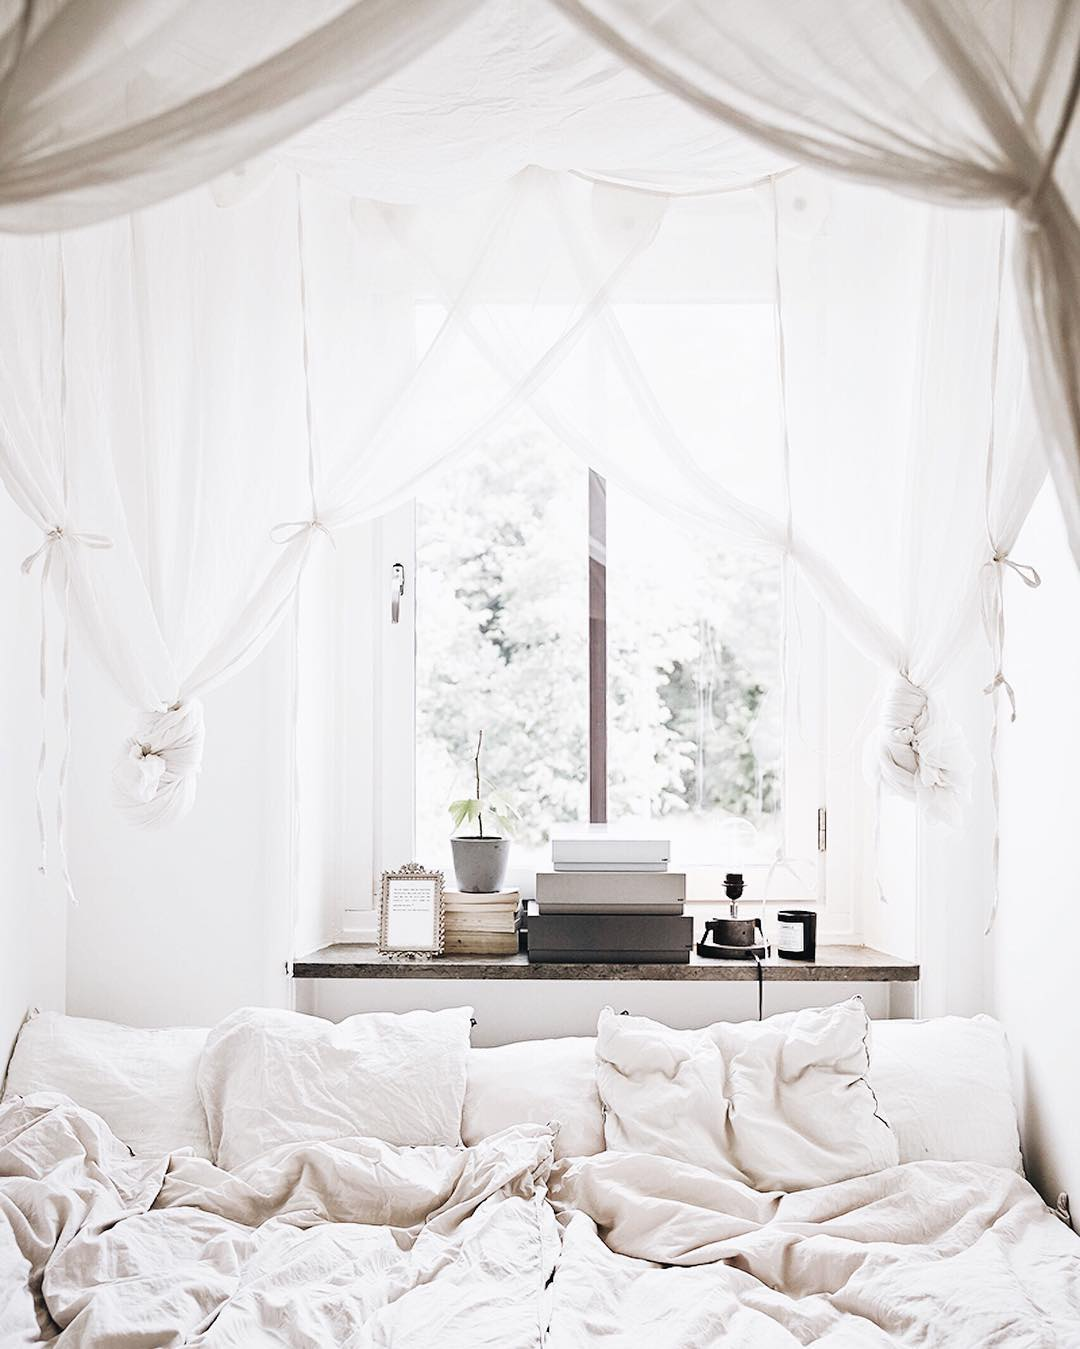 interior inspiration white bed white pillow dreamy